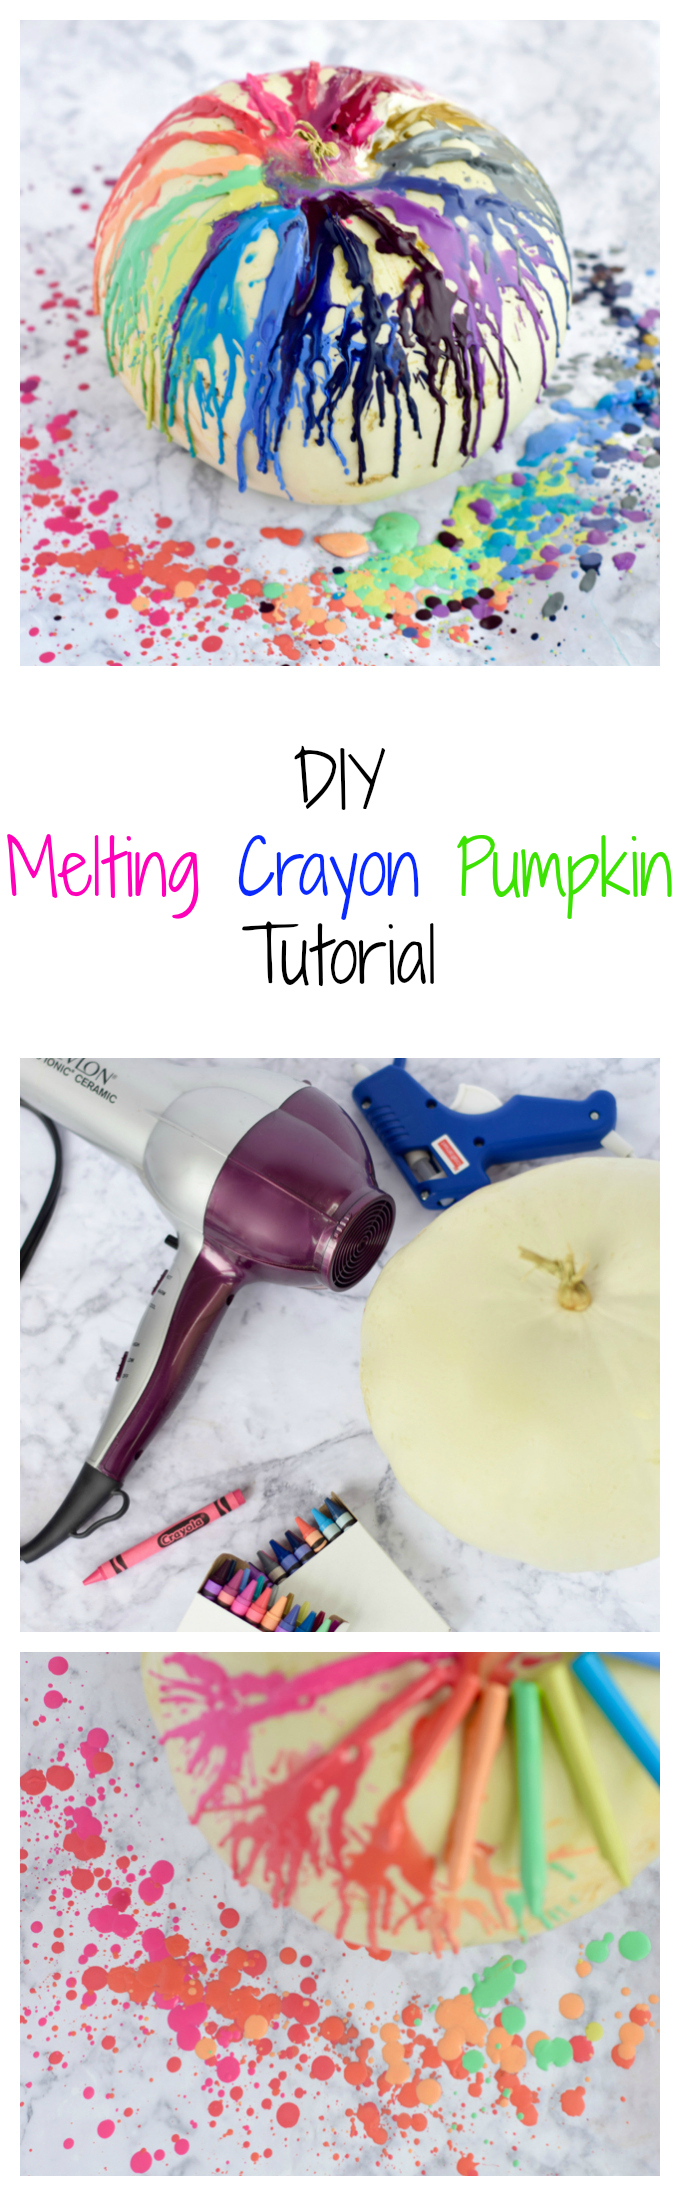 DIY Melting Crayon Pumpkin Tutorial